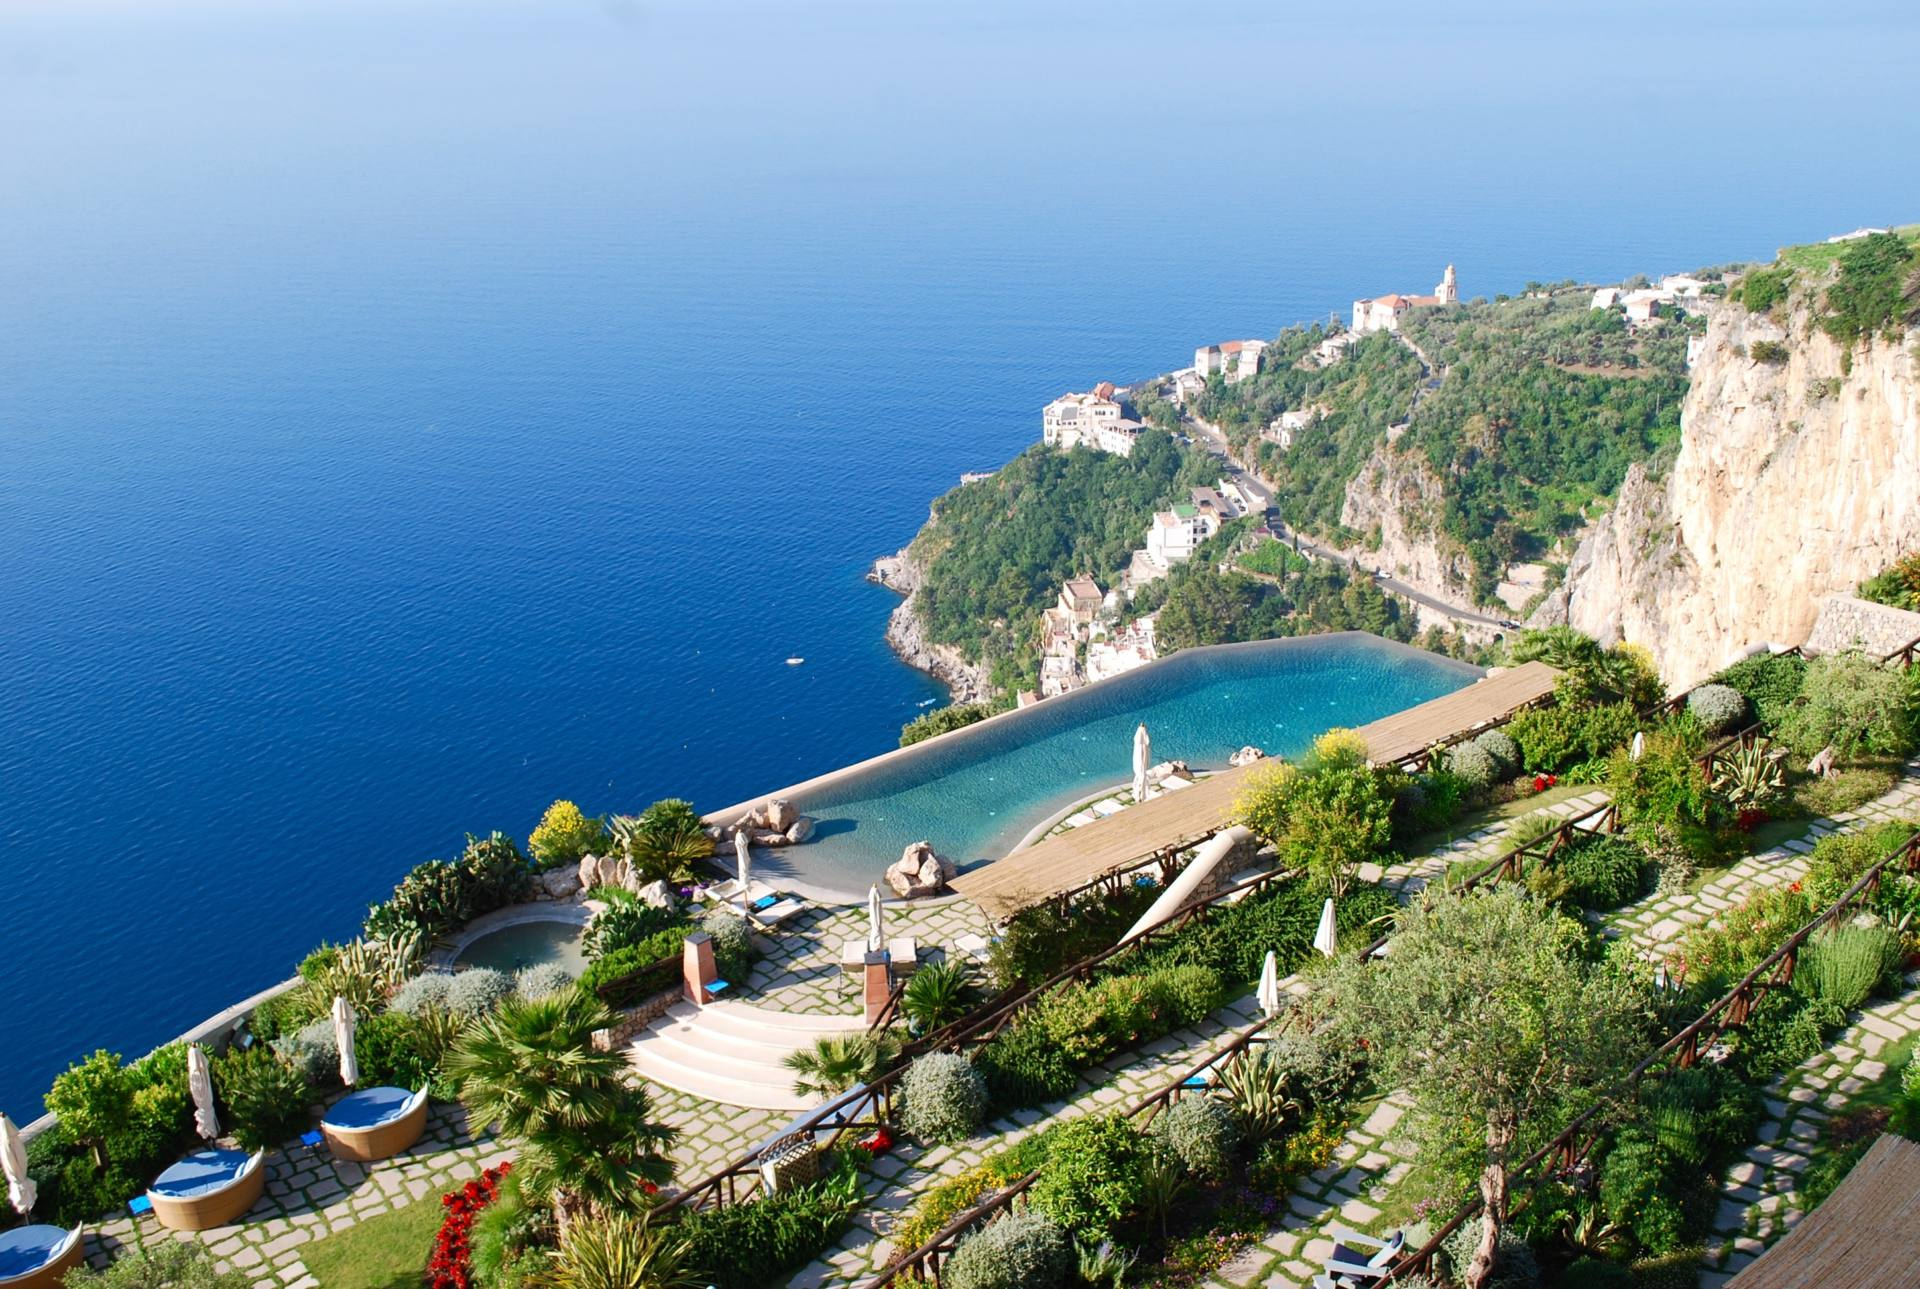 Review: A Stay at Monastero Santa Rosa, Amalfi